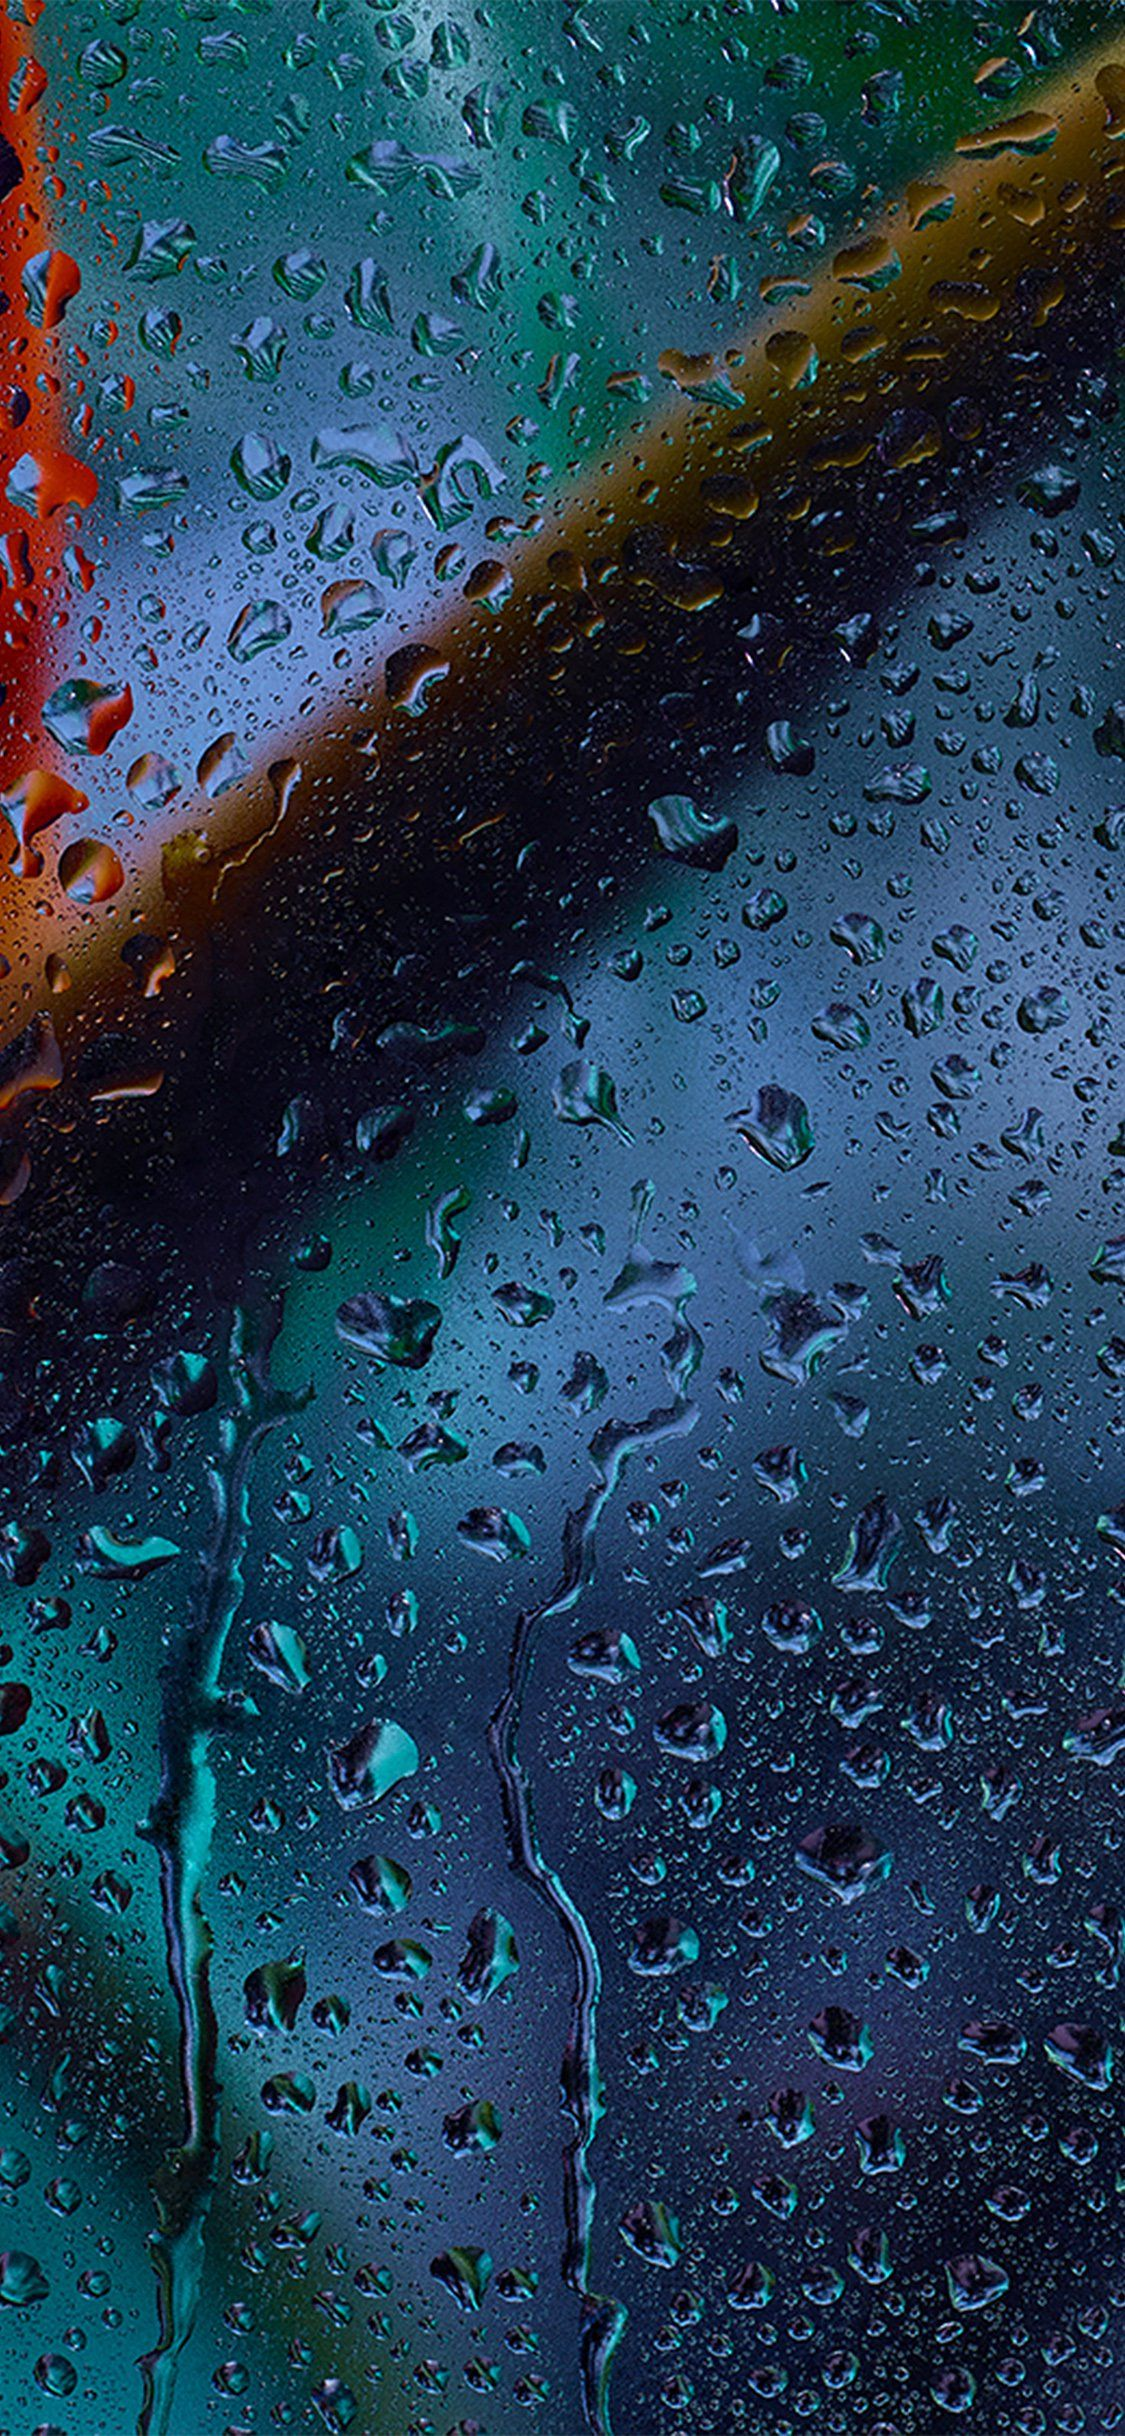 Rain Iphone Wallpapers Top Free Rain Iphone Backgrounds